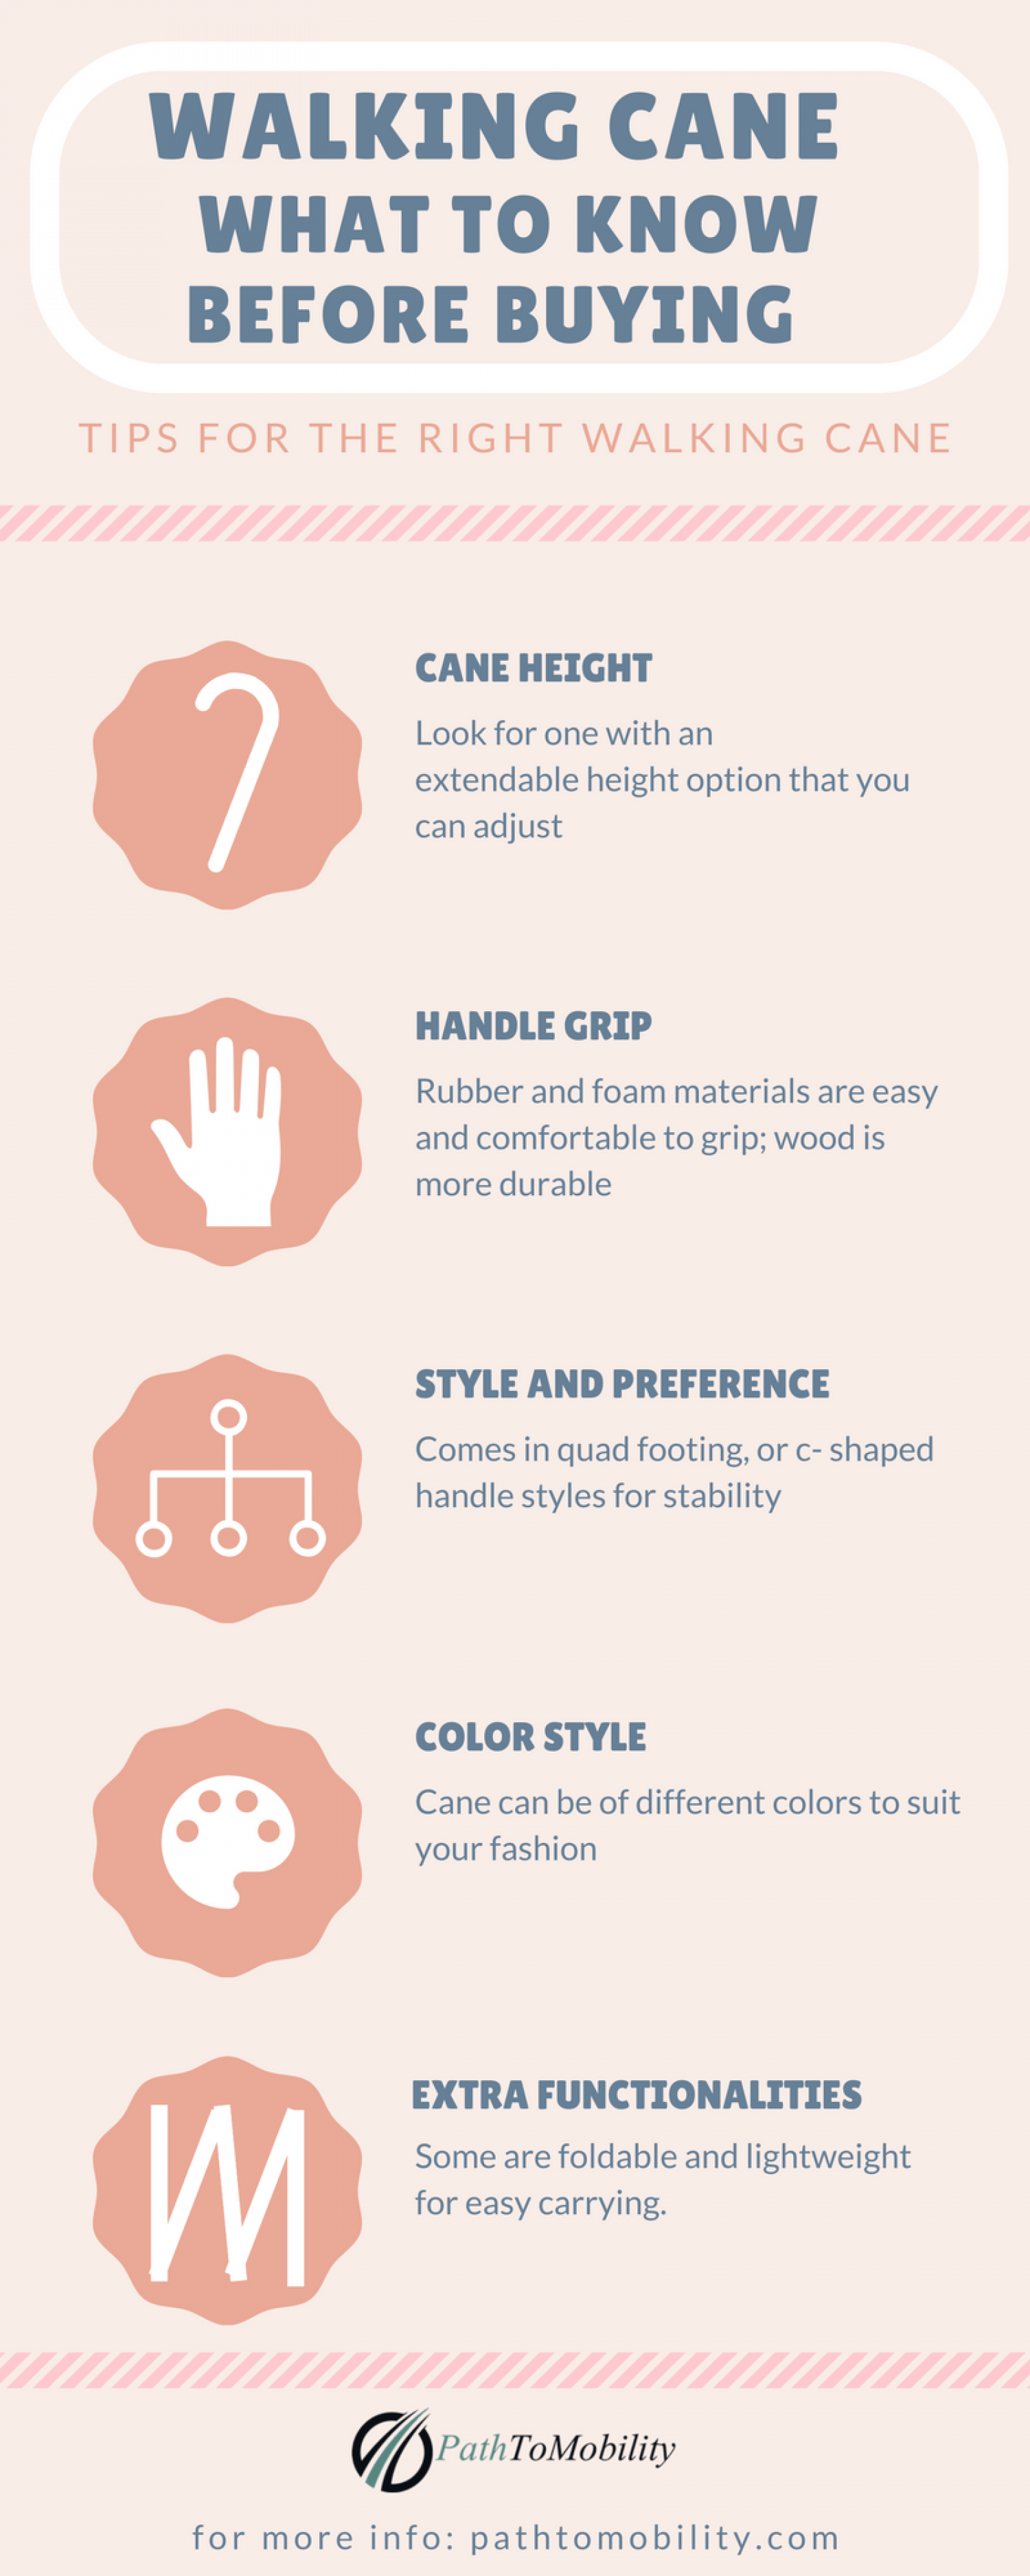 Walking Cane - What to Know Before Buying Infographic